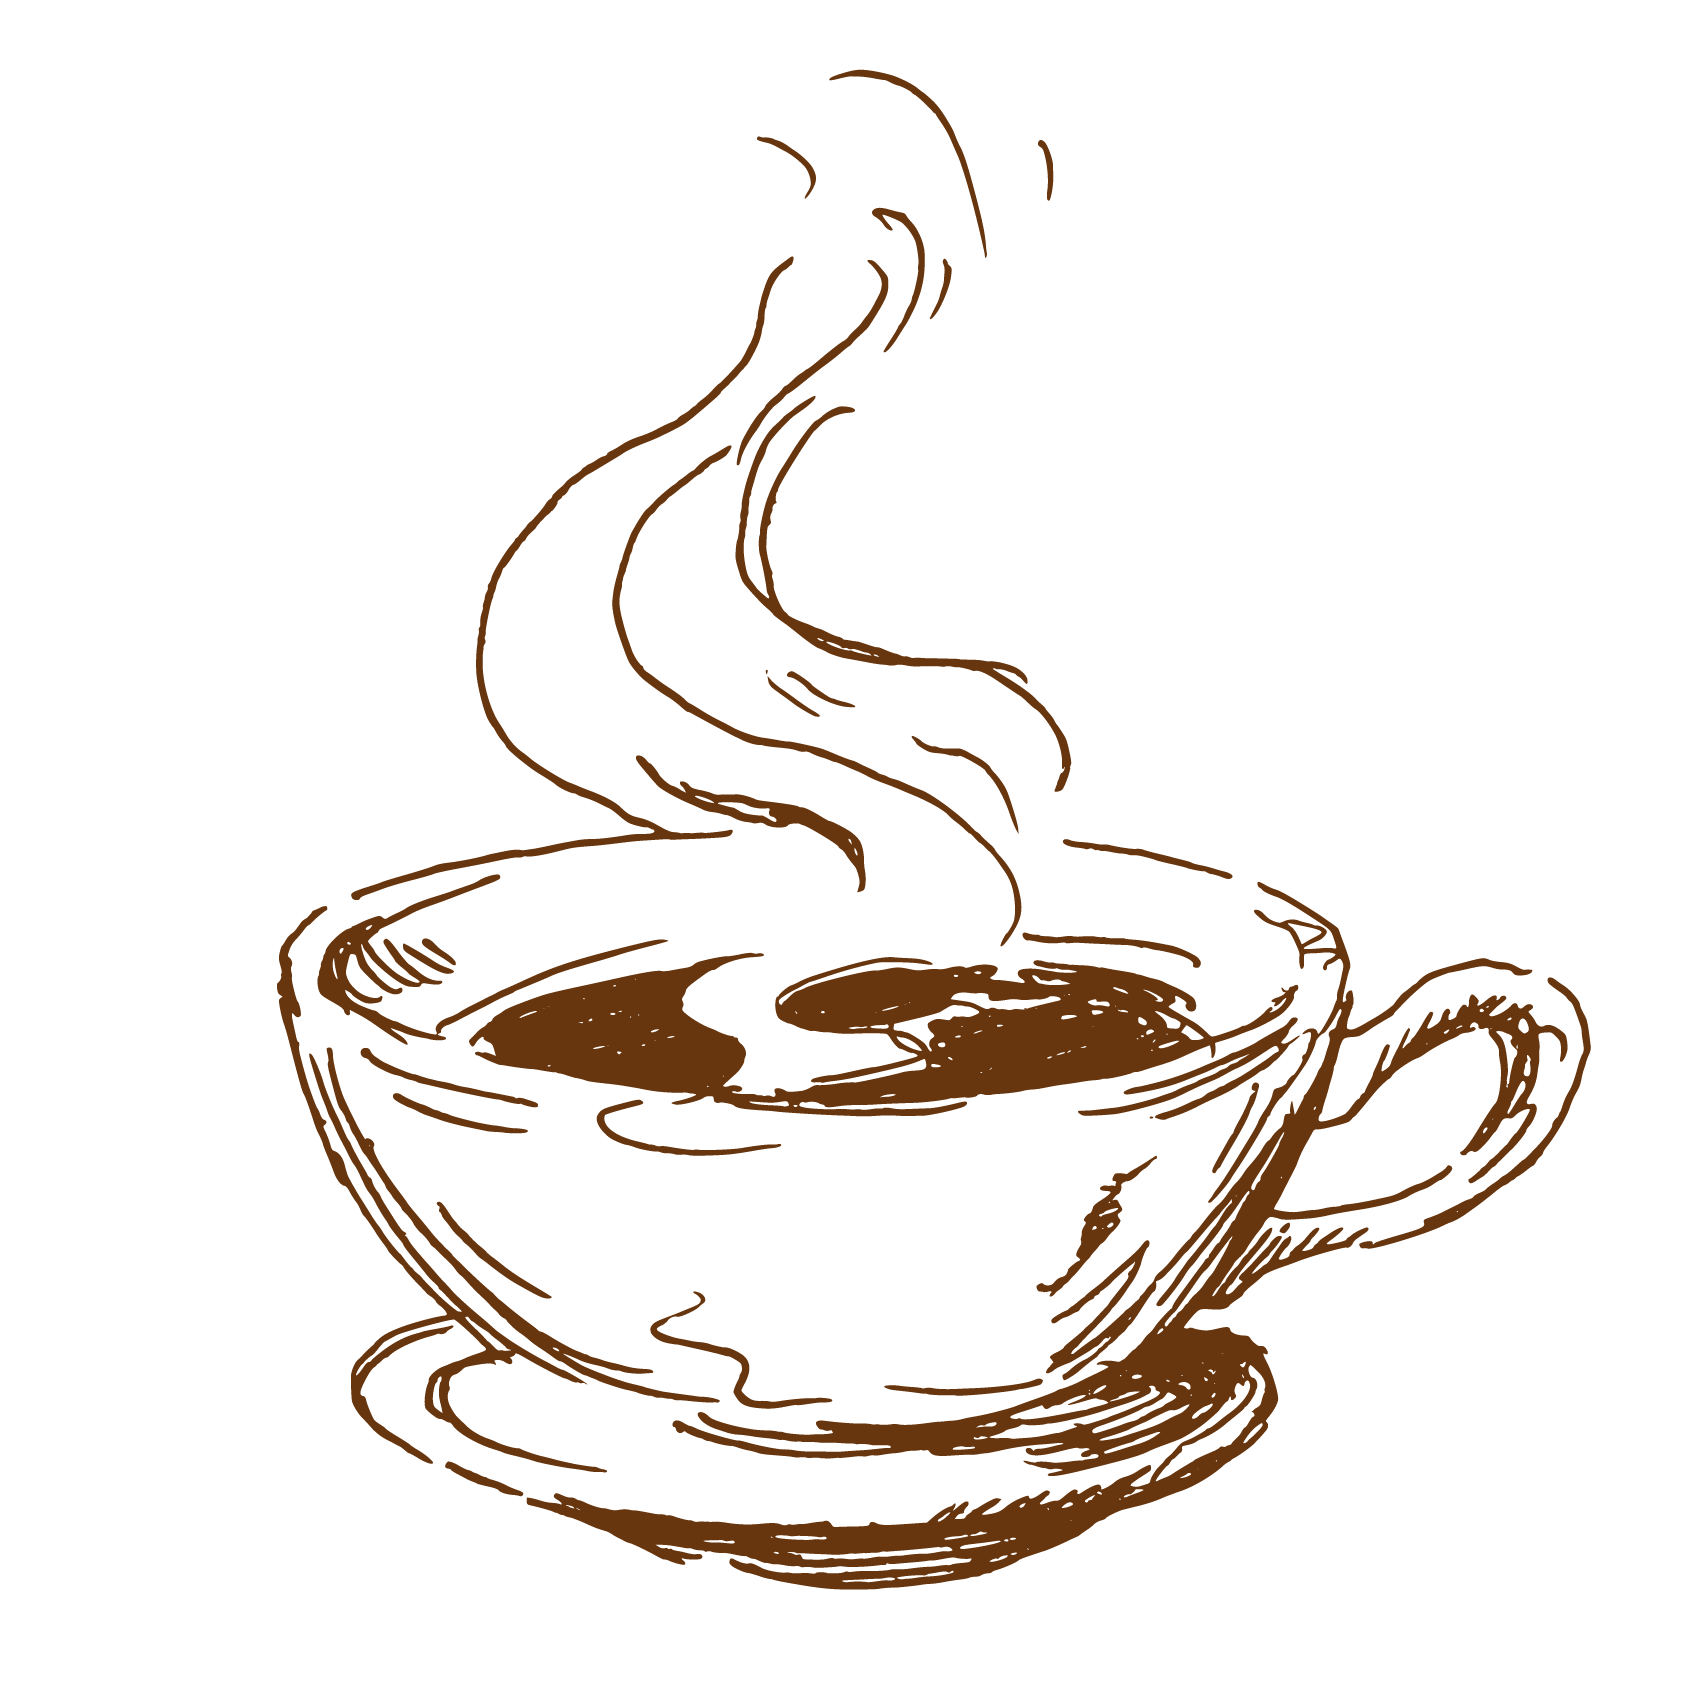 Tea Cup 1708 1708 Transprent Png Free Download Cup Coffee Cup Serveware Cleanpng Kisspng In 2020 Tea Cup Drawing Coffee Cup Art Coffee Cup Drawing